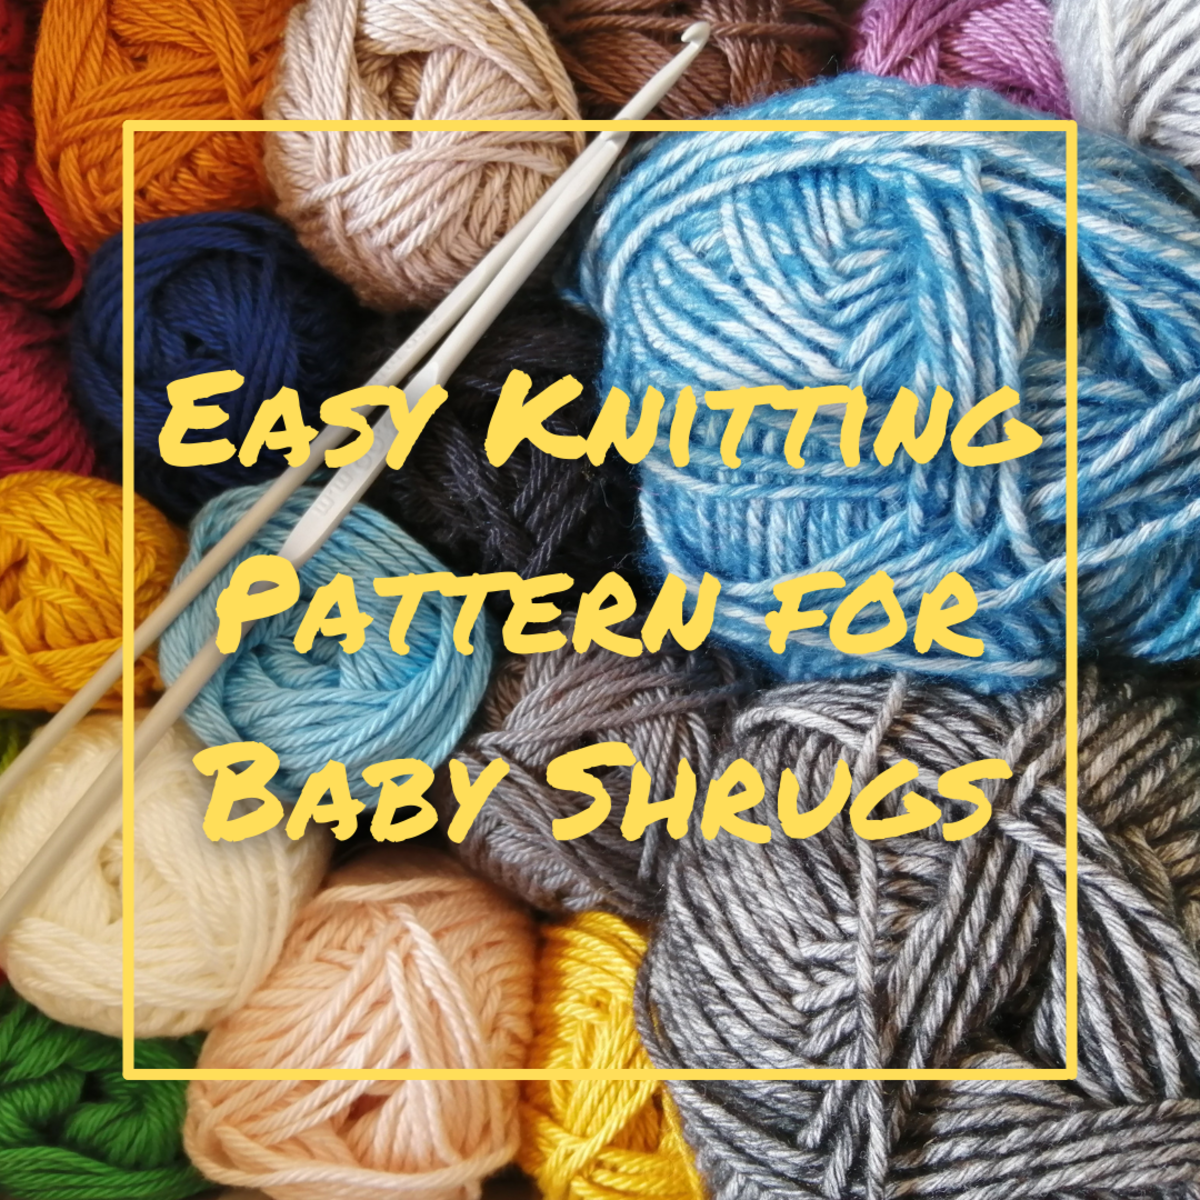 Learn how to knit an easy and cute baby shrug following the simple instructions in this guide!